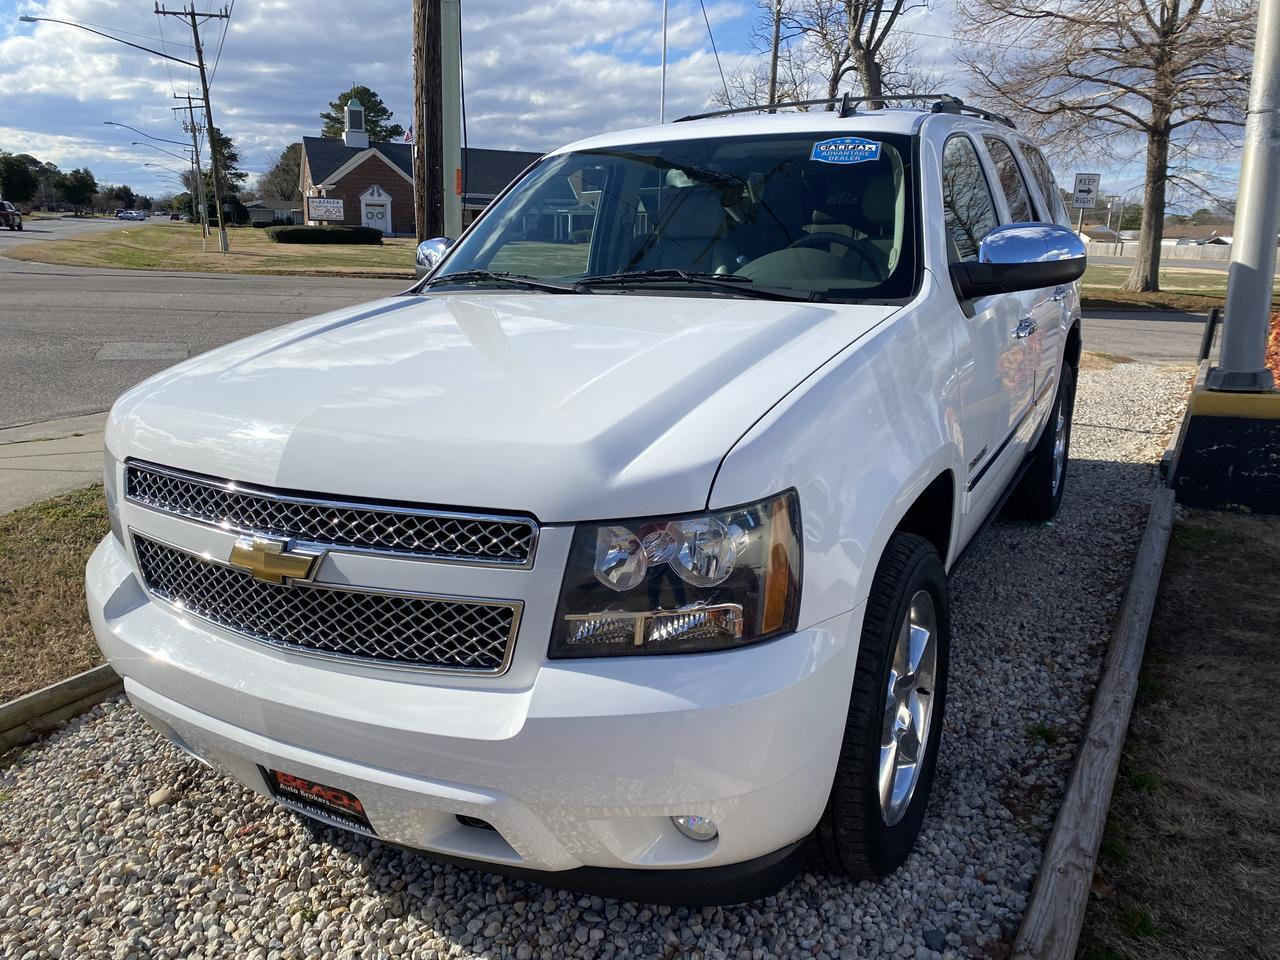 2010 CHEVROLET TAHOE LTZ 4X4, WARRANTY, LEATHER, NAV, HEATED/COOLED SEATS, DVD PLAYER, 3RD ROW, SUNROOF, CLEAN CARFAX! Norfolk VA